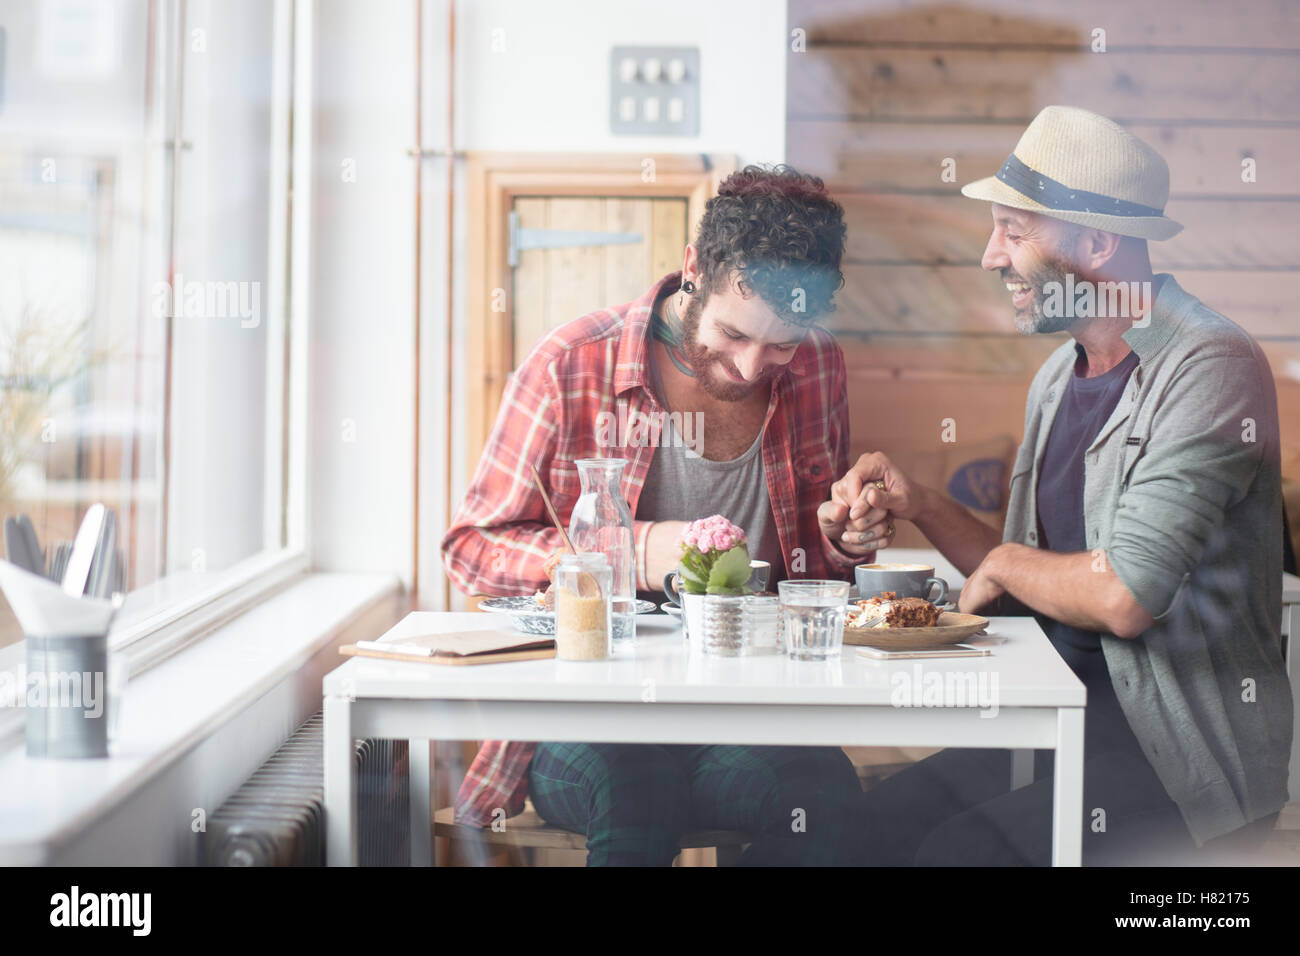 Gay couple sat holding hands in cafe Stock Photo